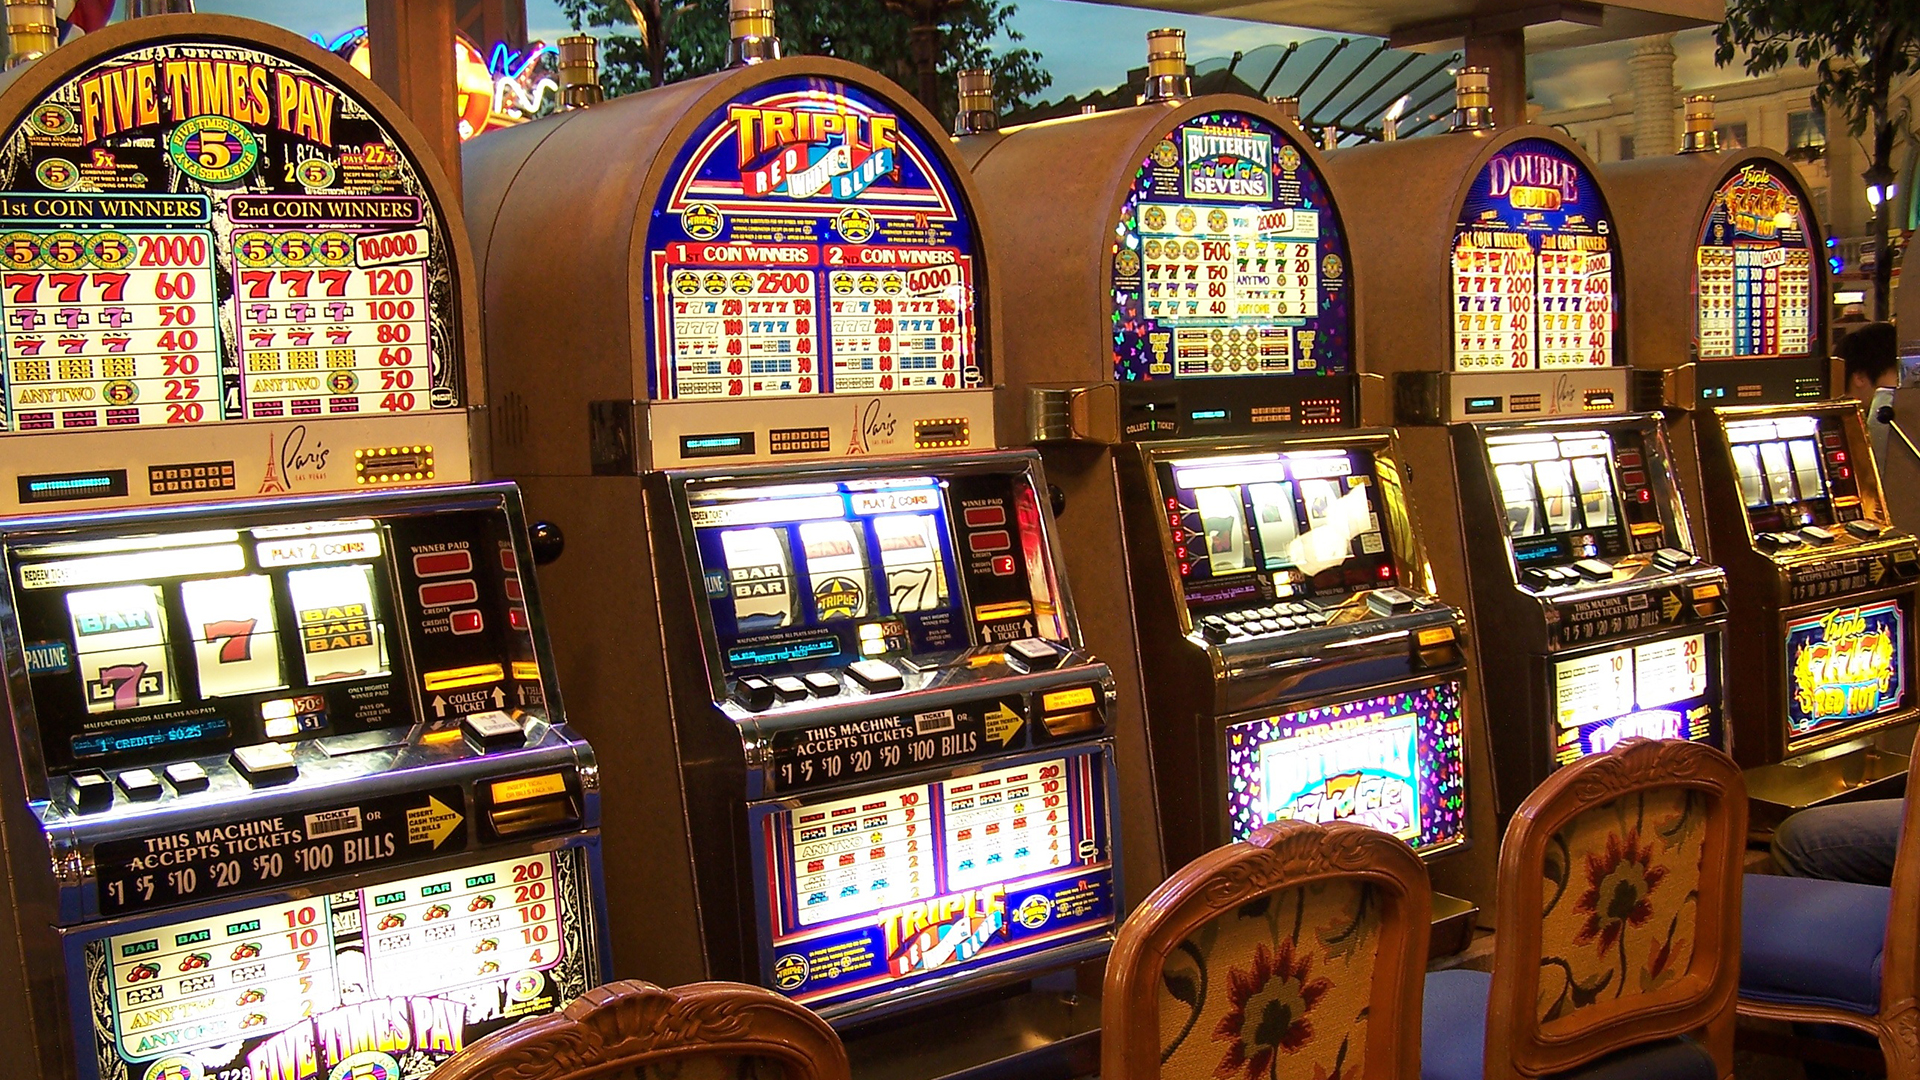 Slot machines in a casino. Virtual background to use on Zoom, Microsoft Teams, Skype, Google Meet, WebEx or any other compatible app.